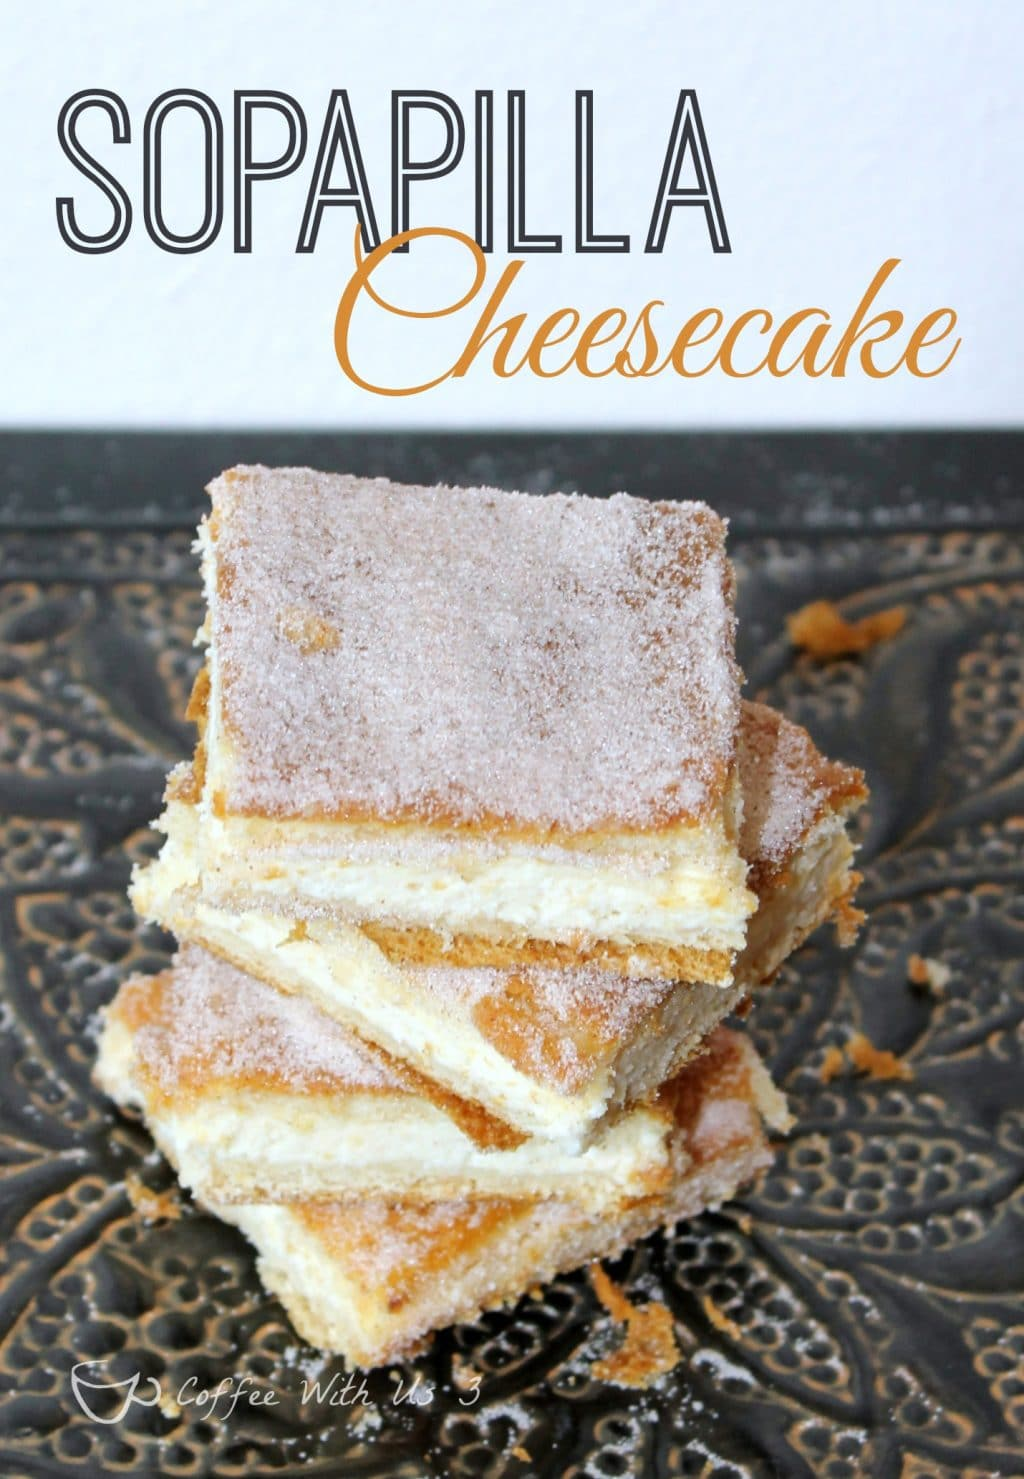 Sopapilla Cheesecake, also known as Churro Cheesecake. These are to-die for! Rich, creamy, cinnamon sugary treats that are so easy to make!